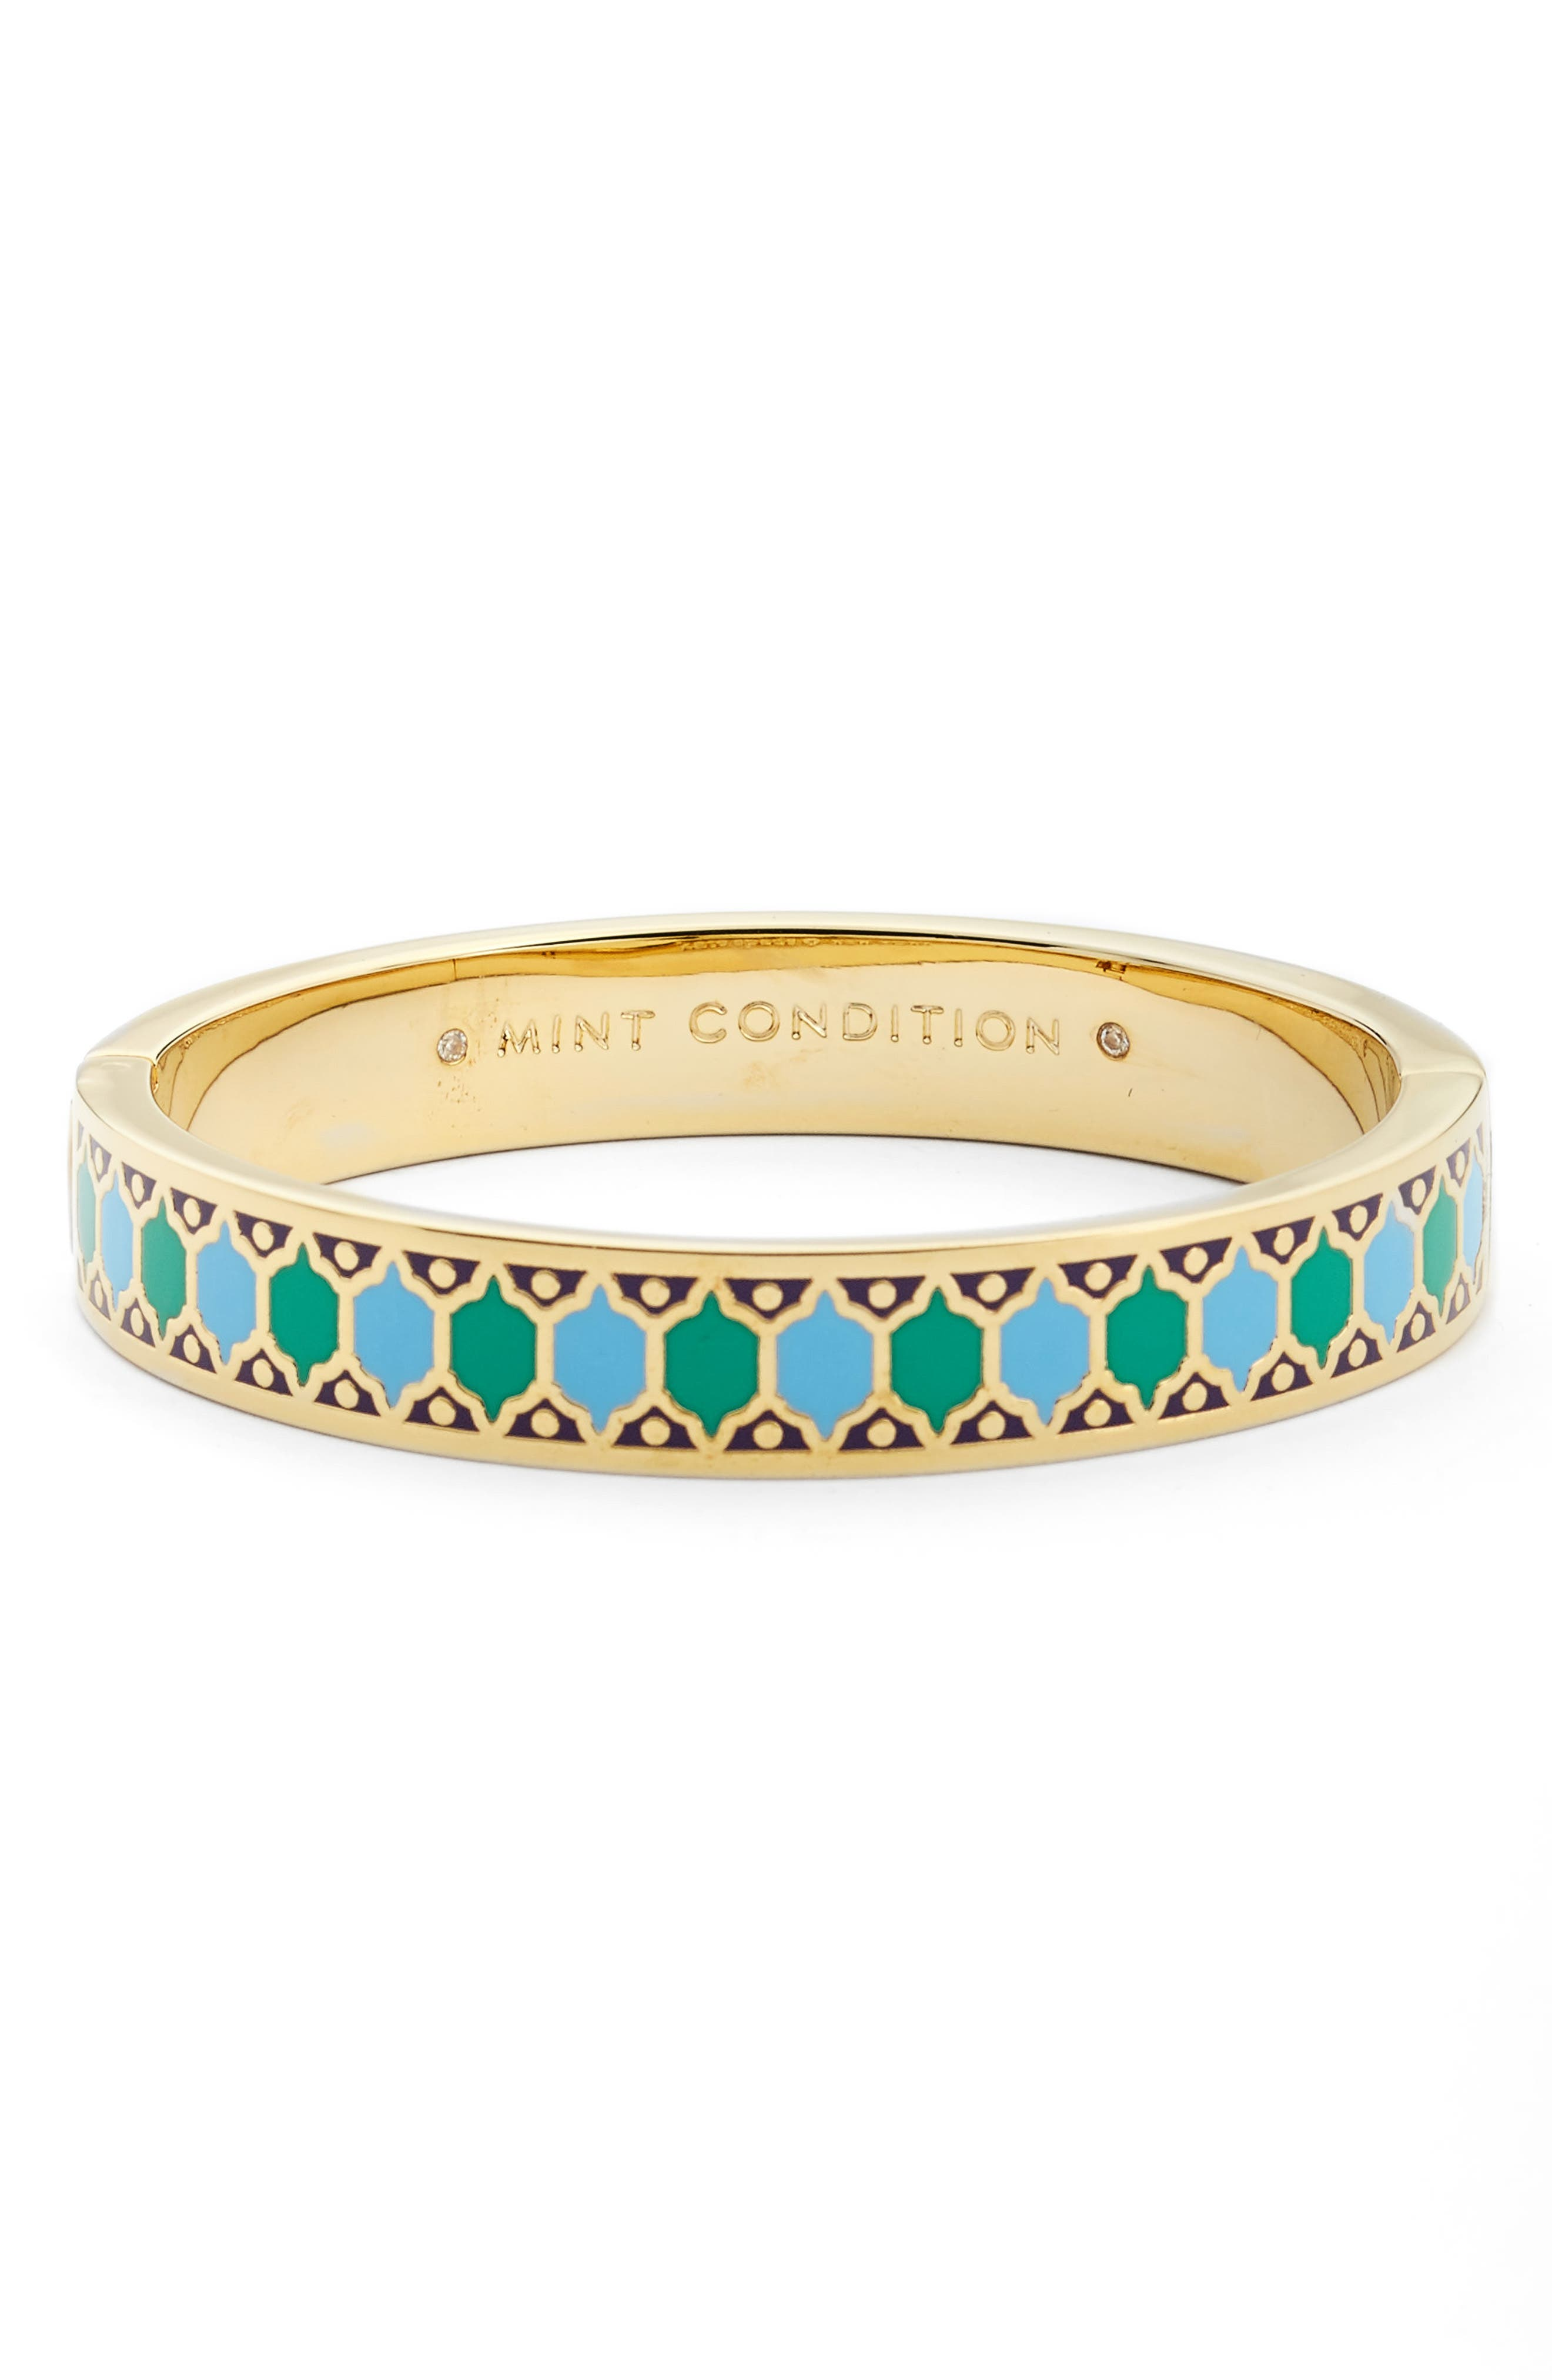 idiom mint condition bangle, Main, color, 400